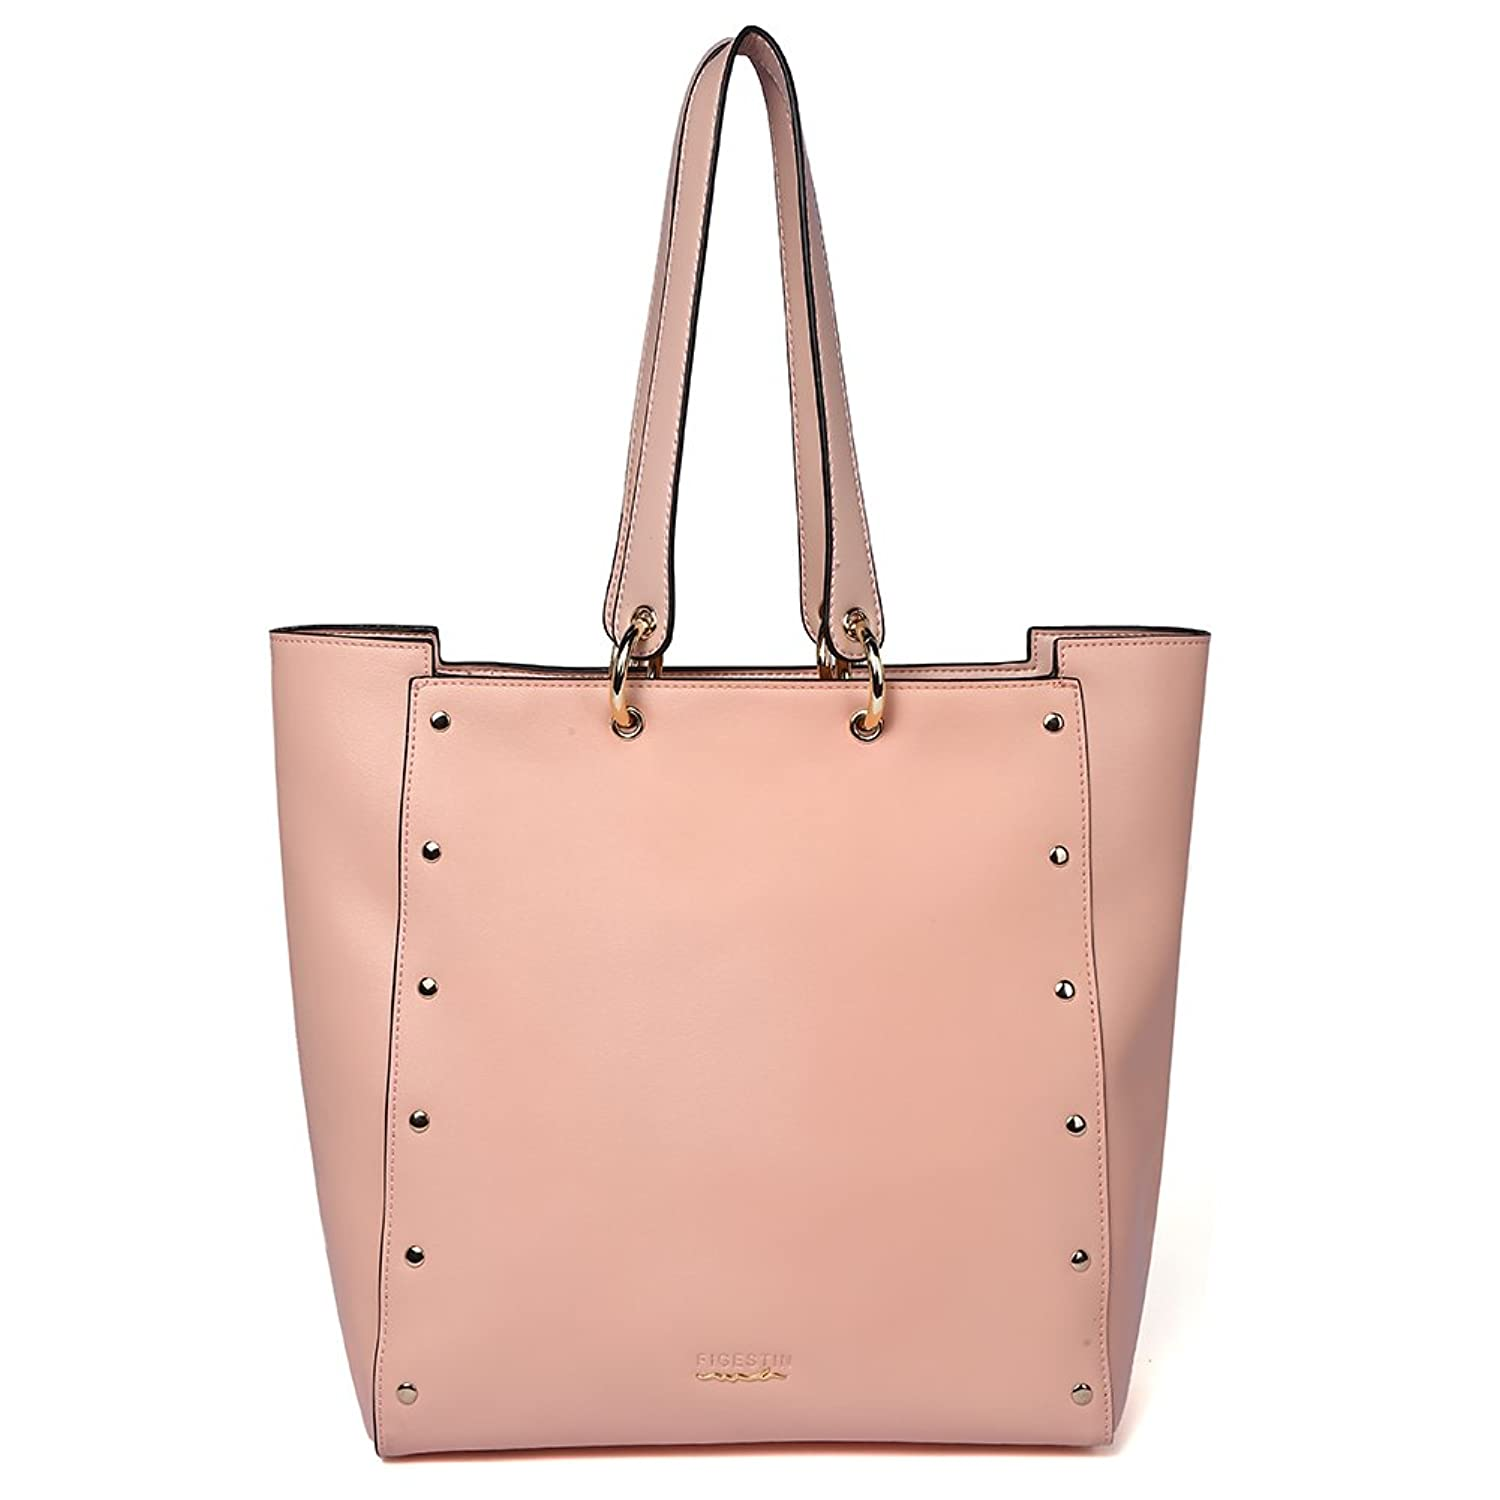 c3067ae66 On Clearance - FIGESTIN Women Leather Tote Purse Designer Top Handle  Satchel Shoulder Bags for Ladies